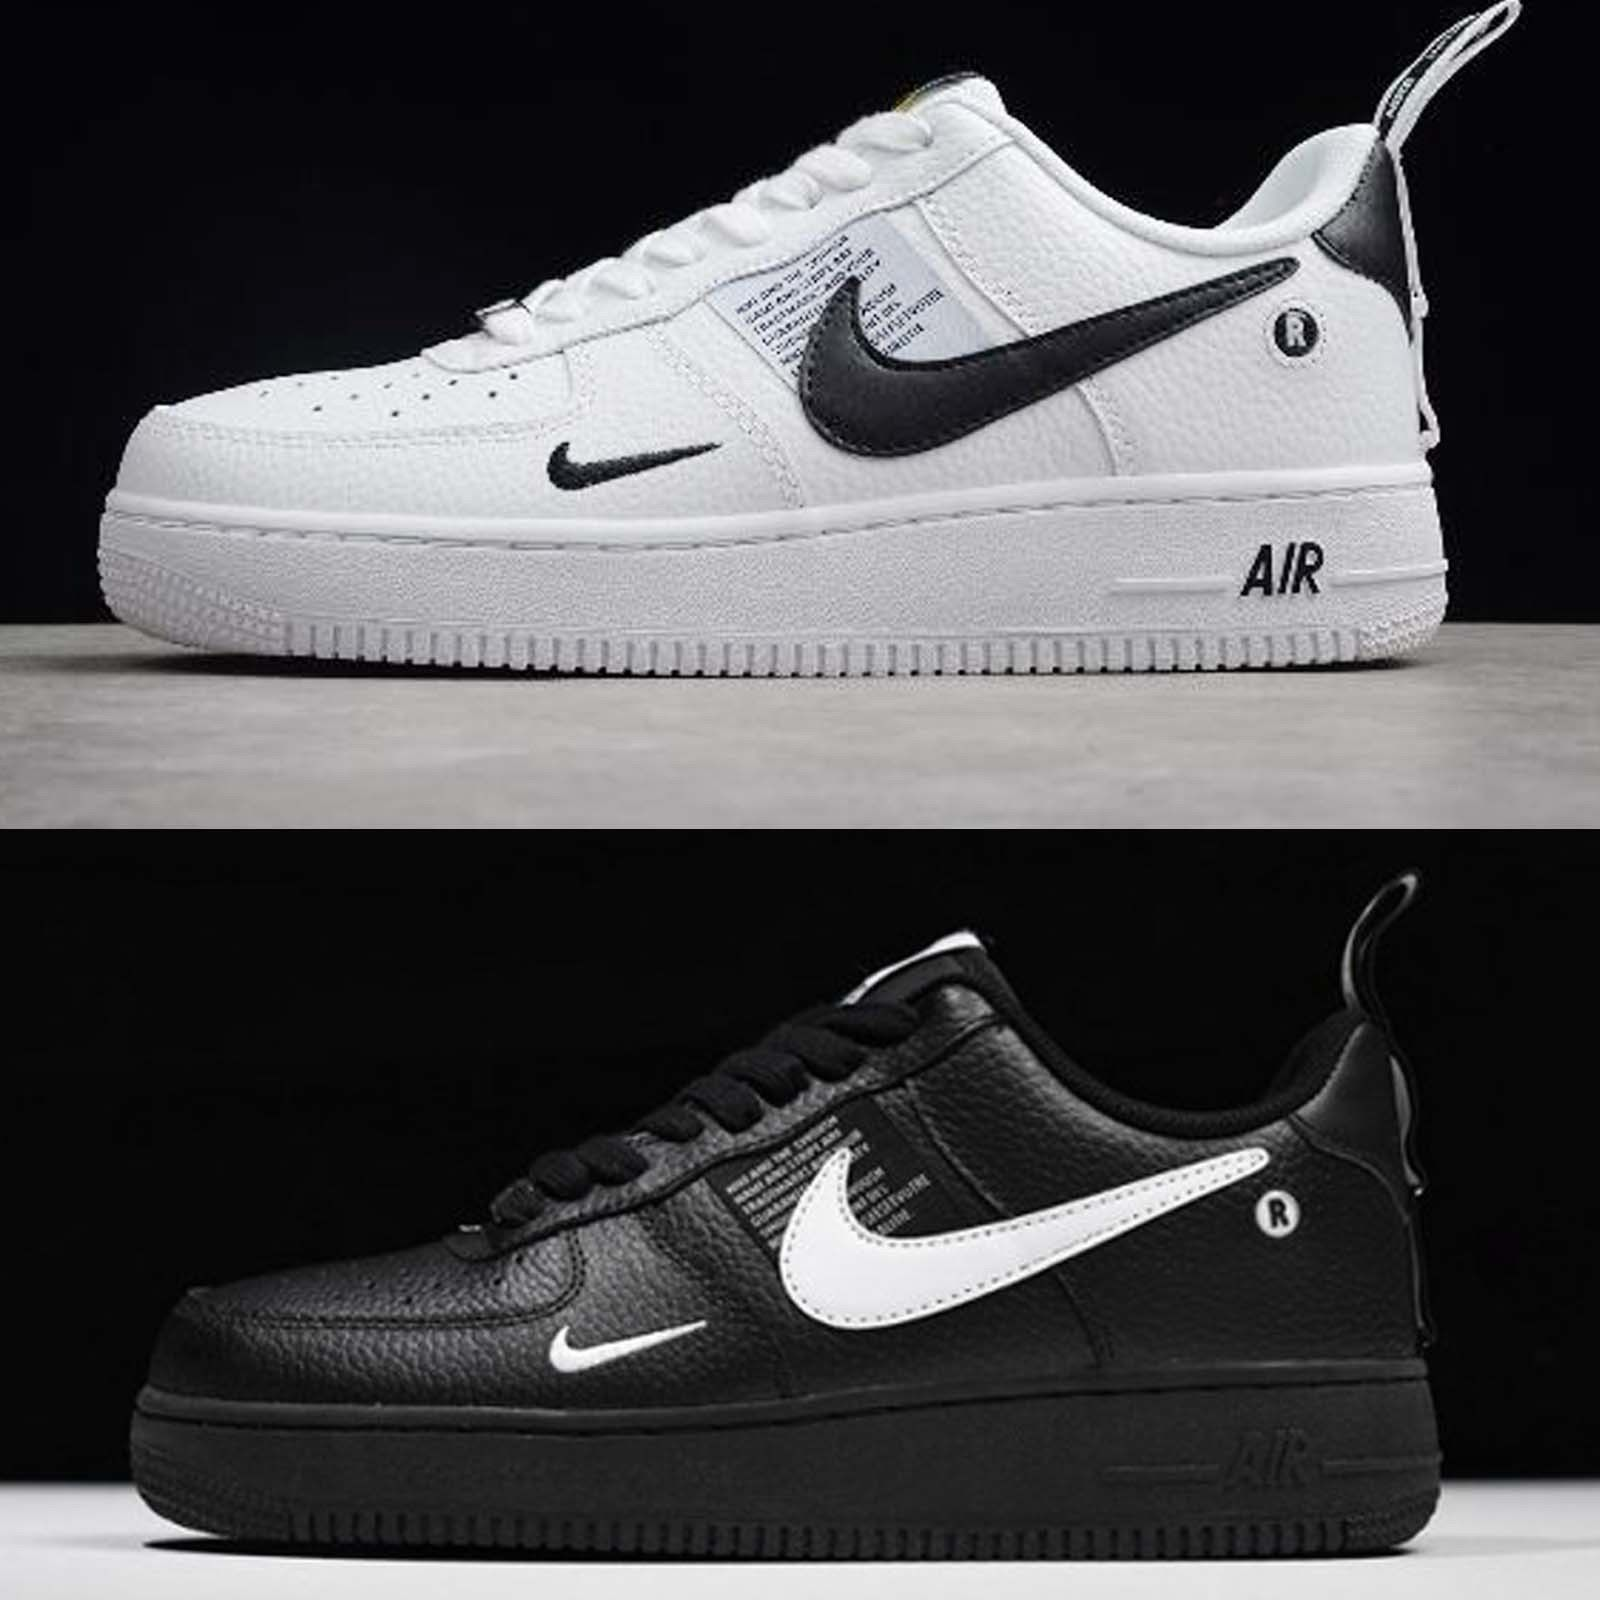 4bcfee57d Nike Air Force 1 07 LV8 utility back and white | Shoes in 2019 ...